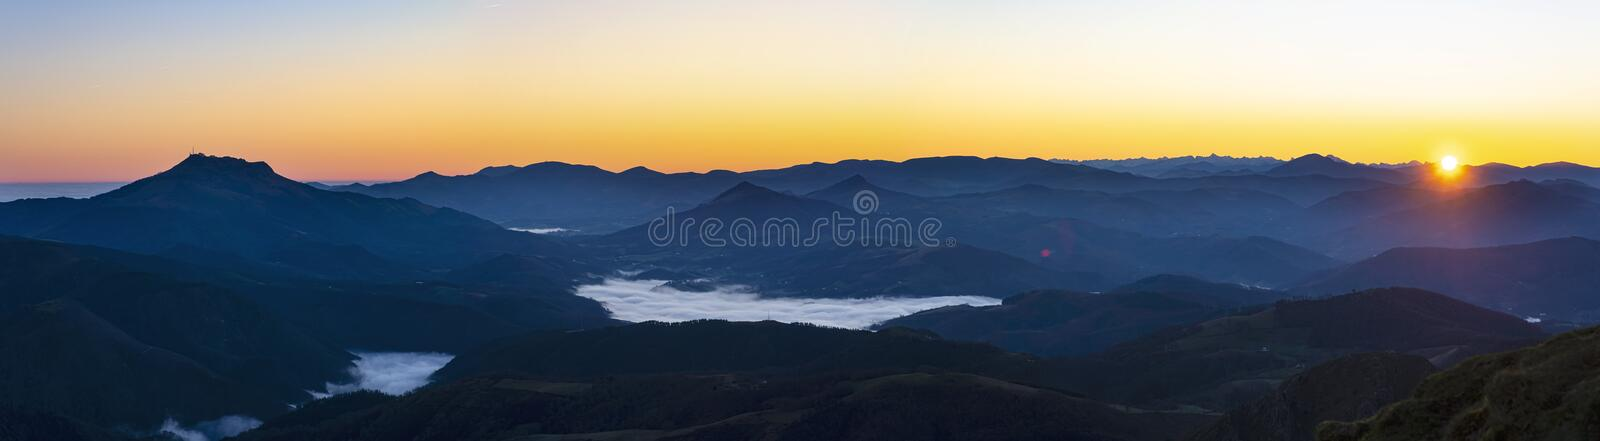 The sun rises with mists over the Pyrenees mountains in Euskadi and Navarra, from the Aiako Harriak Natural Park stock photo